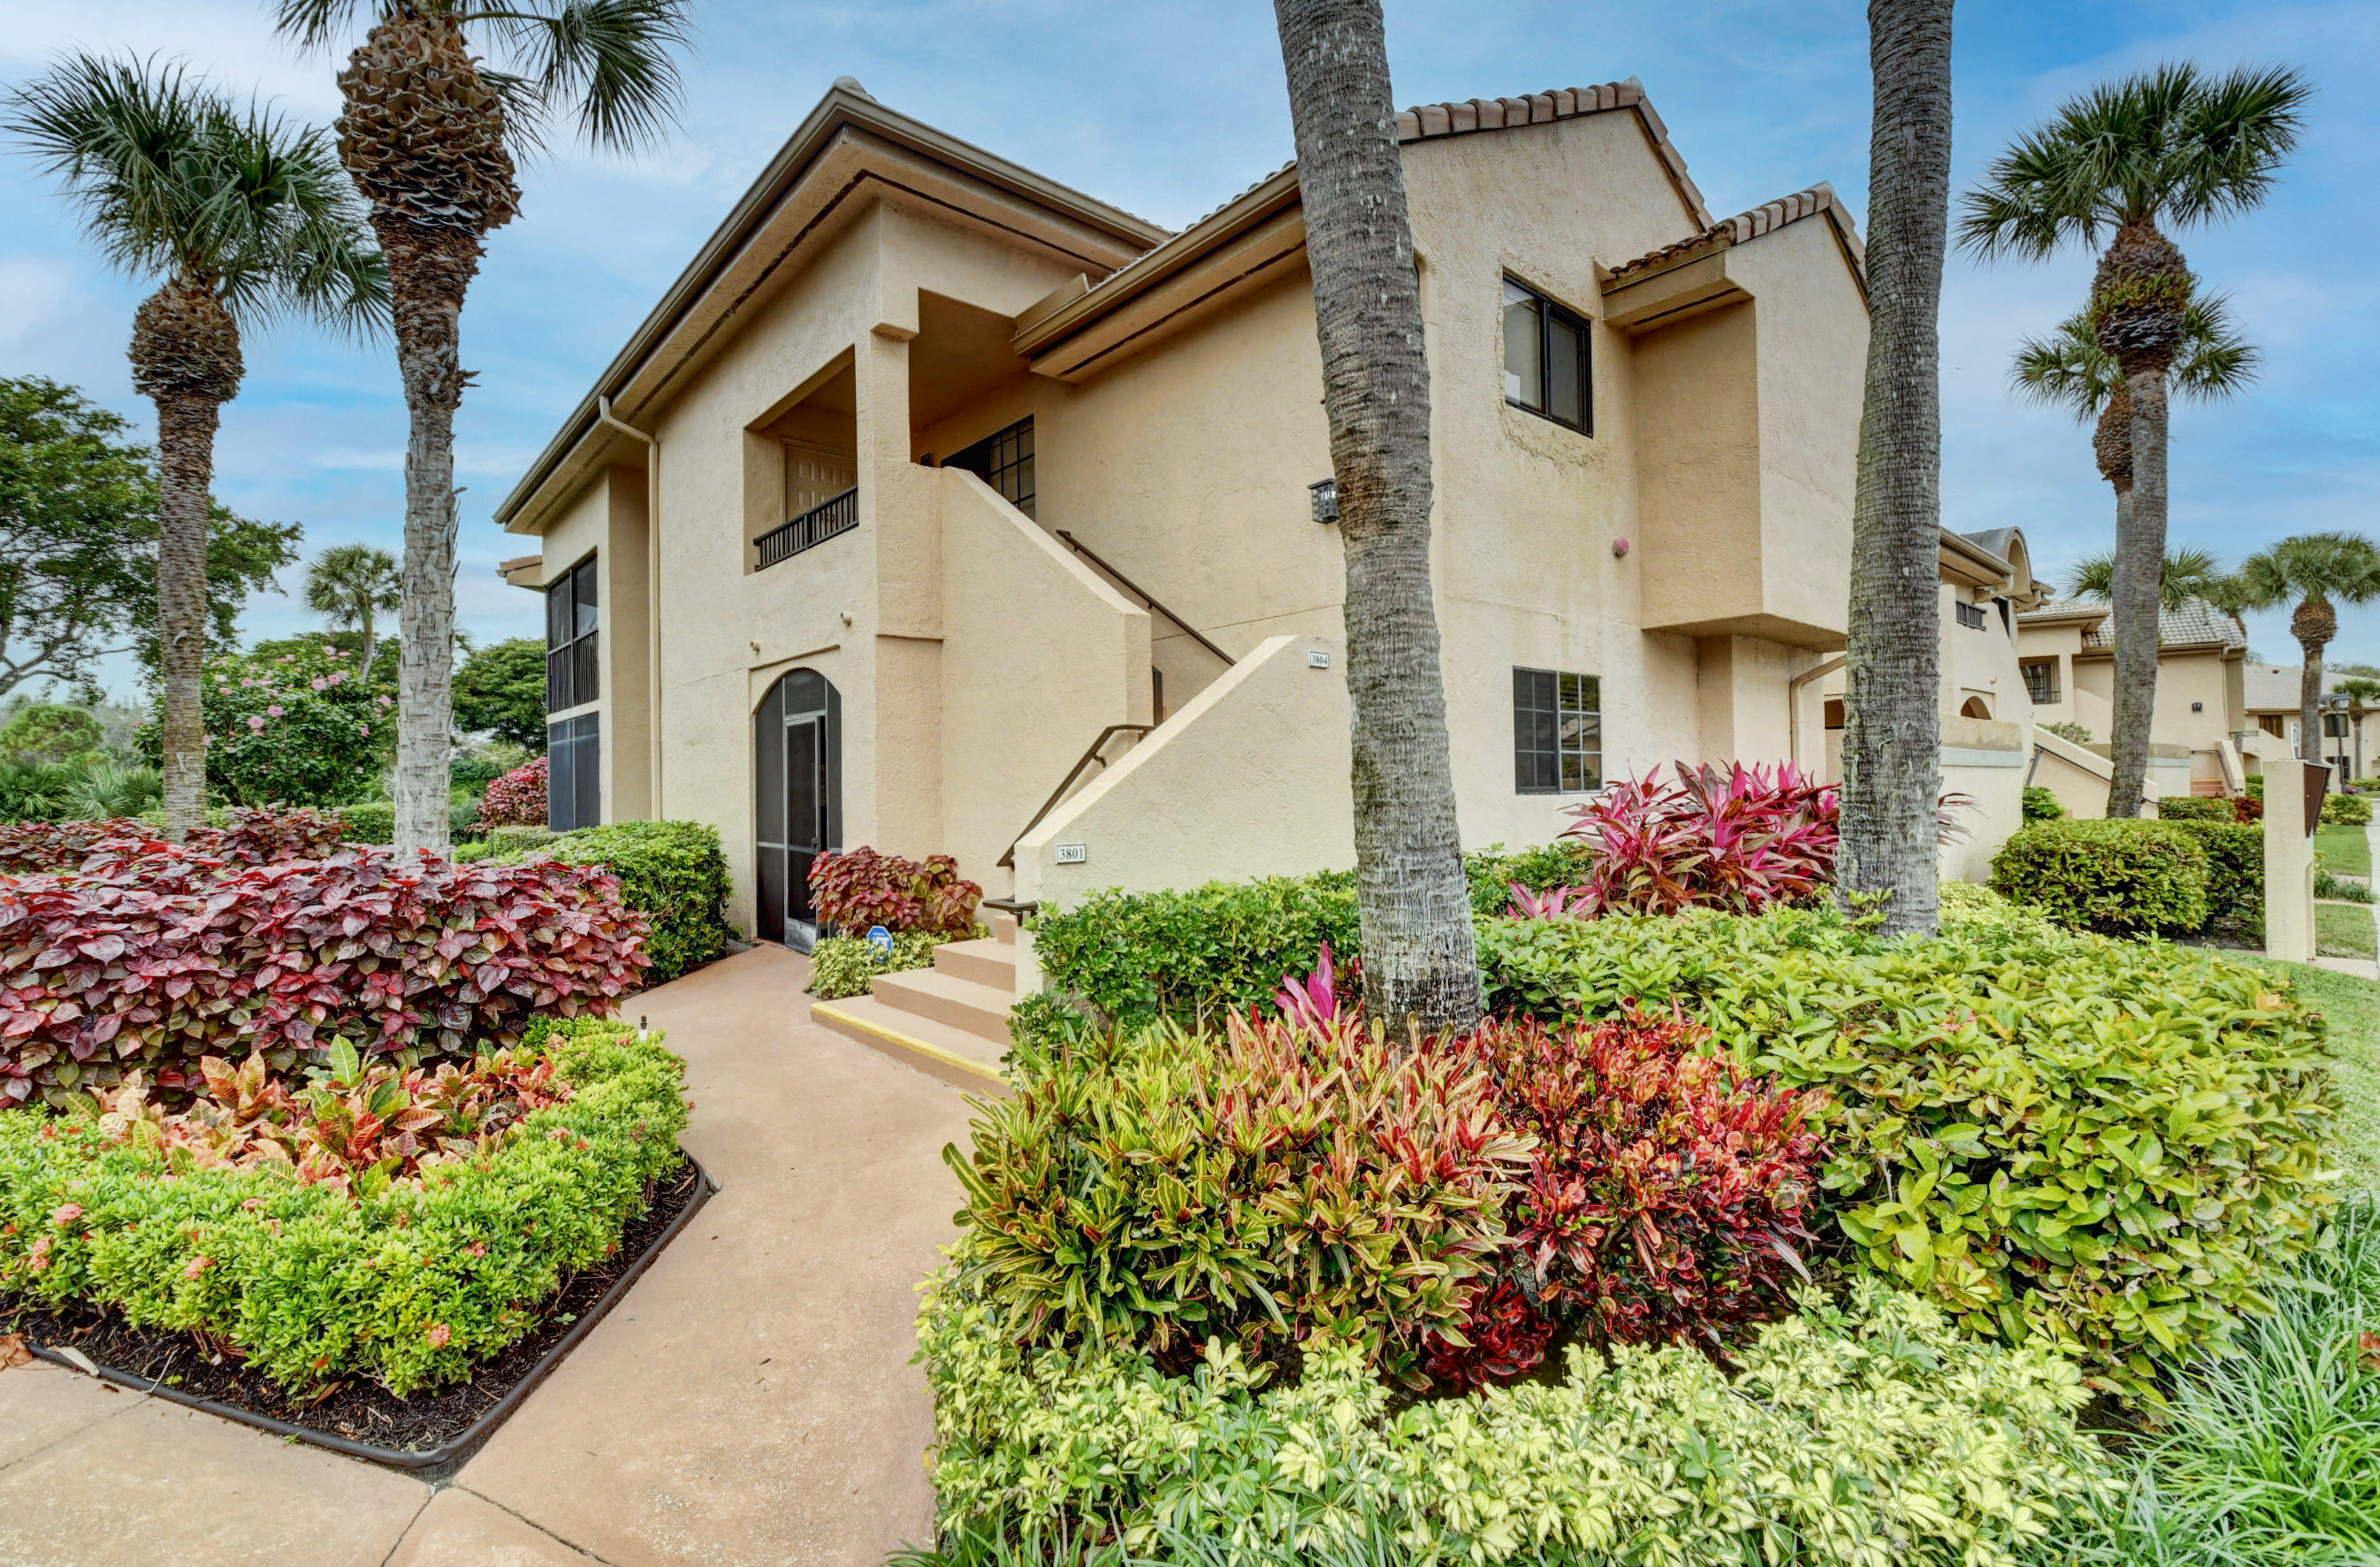 Home for sale in Gleeneagles Country Club Delray Beach Florida